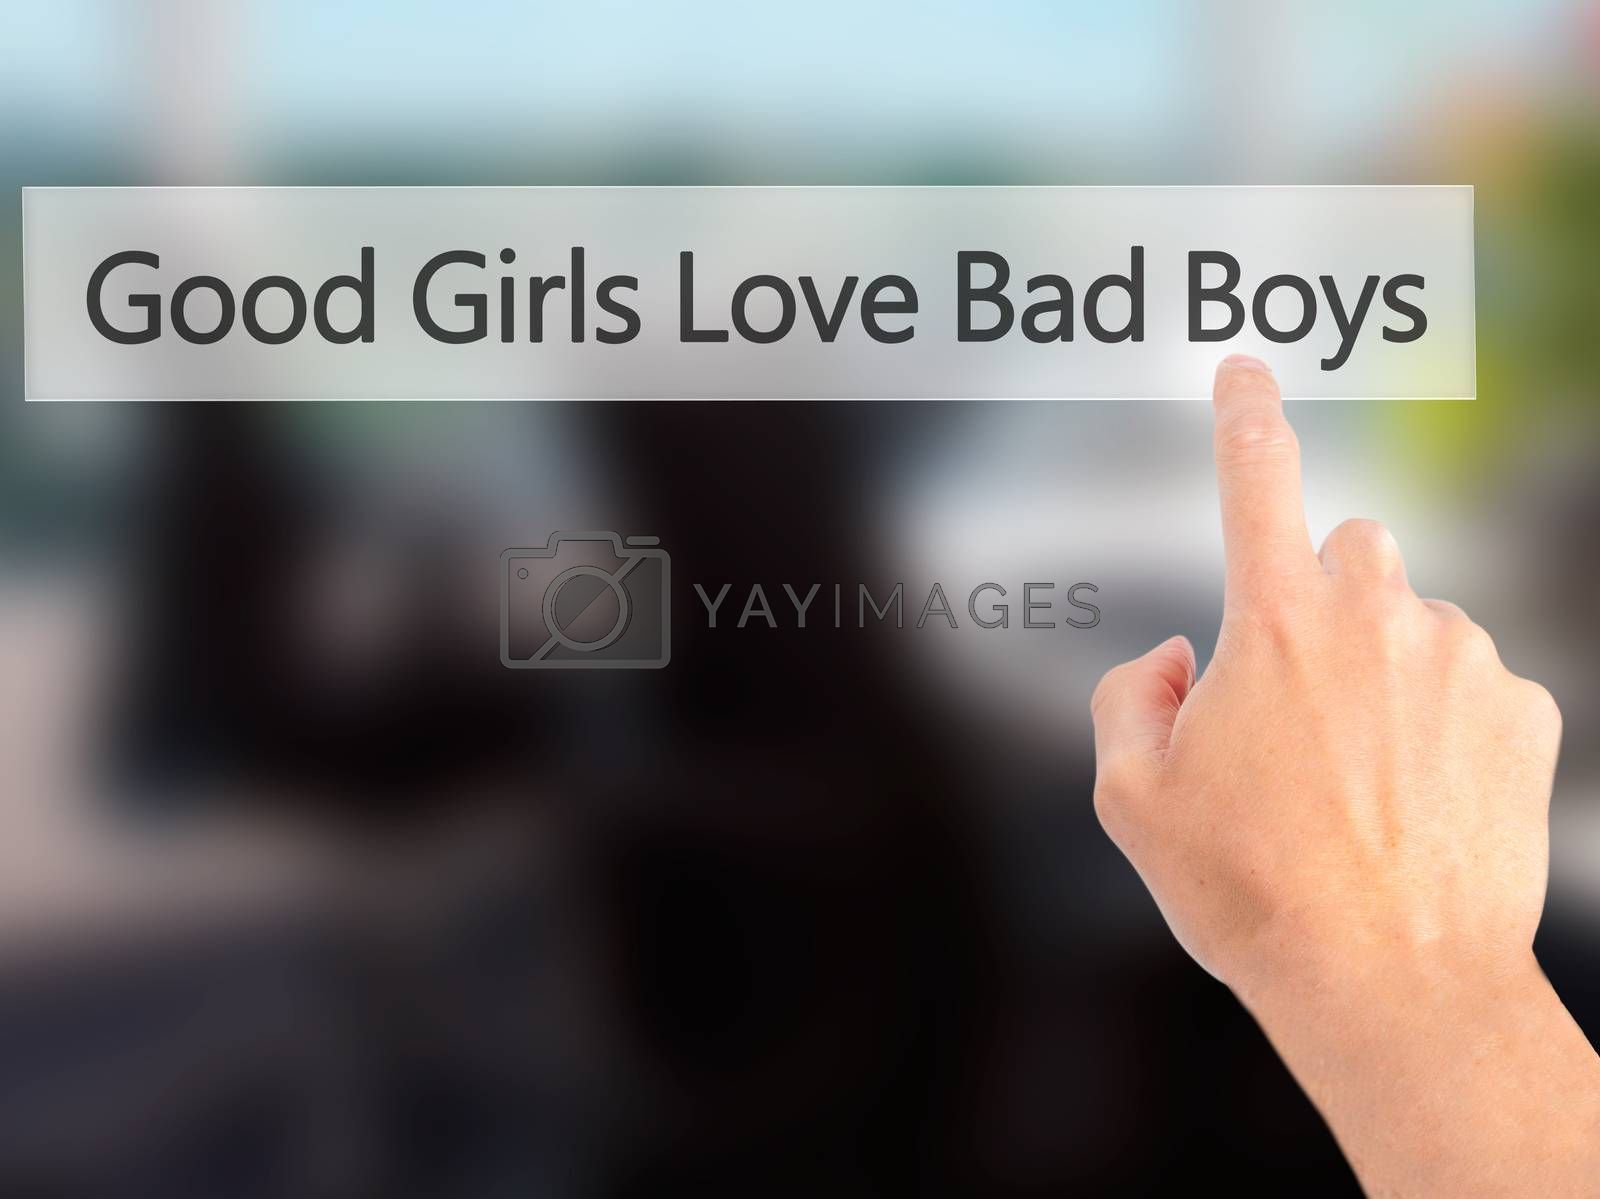 Good Girls Love Bad Boys - Hand pressing a button on blurred bac by netsay.net